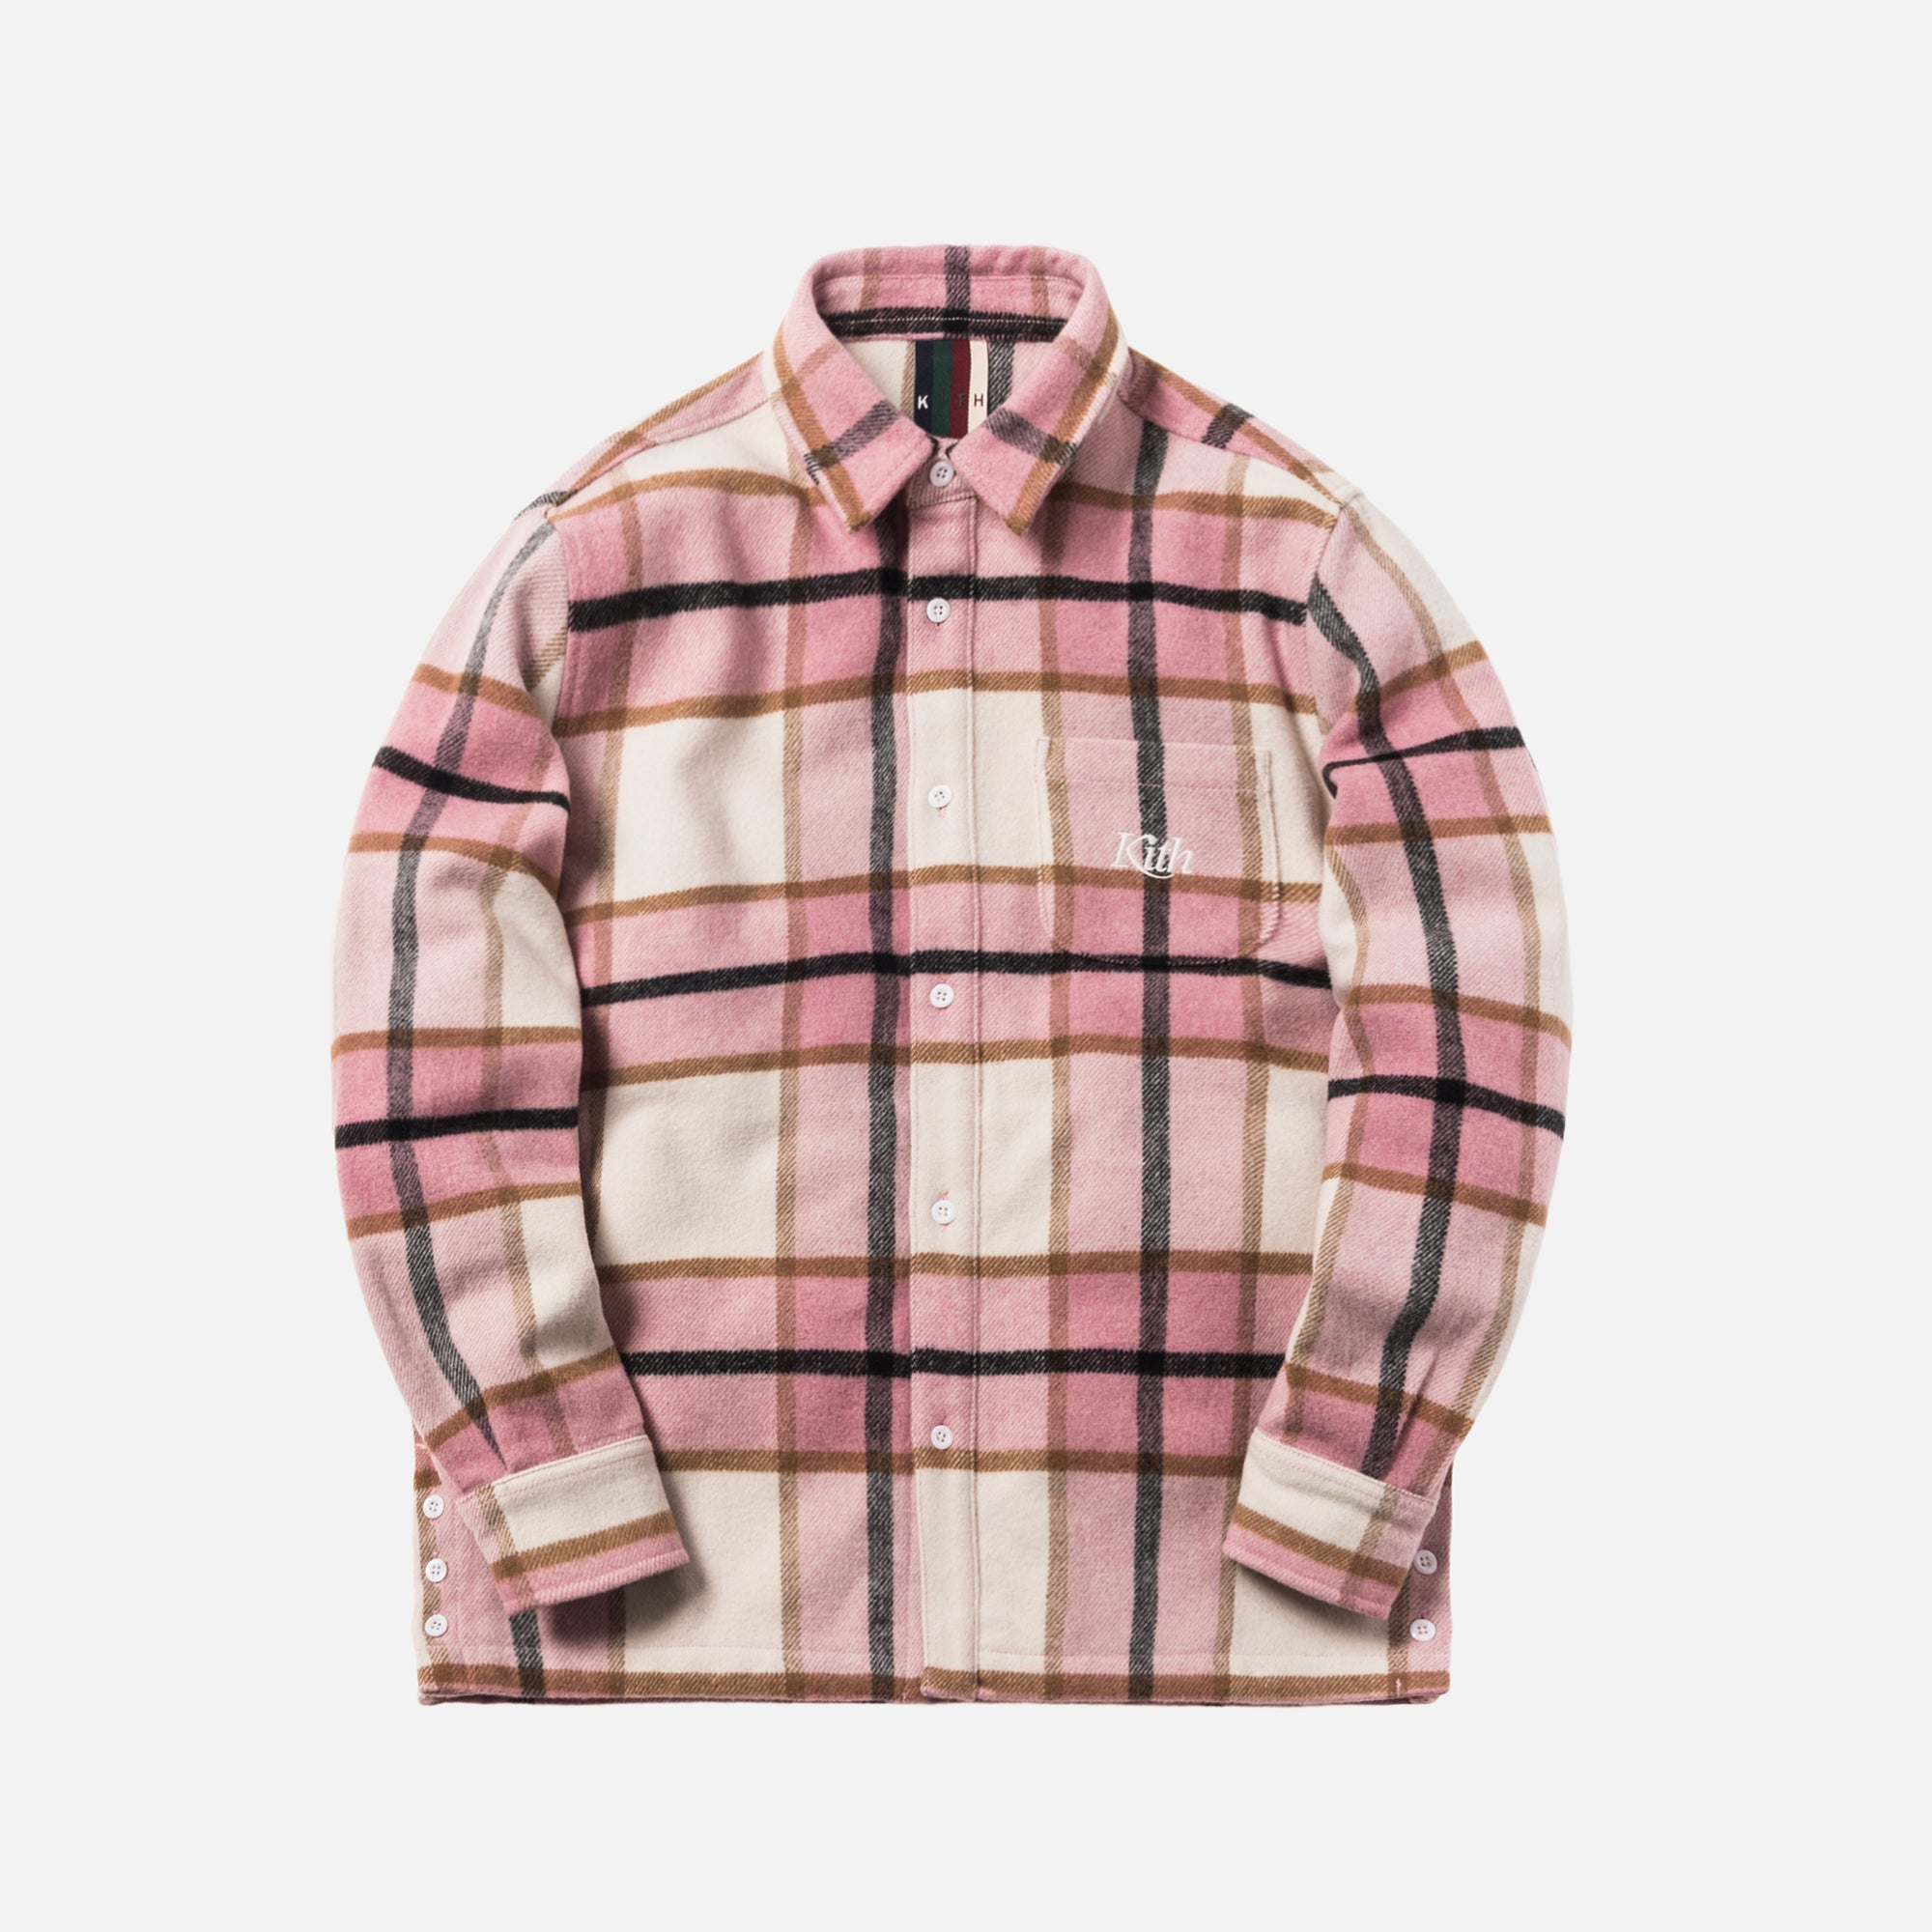 Kith Ginza Heavy Weight Flannel - Pink Plaid